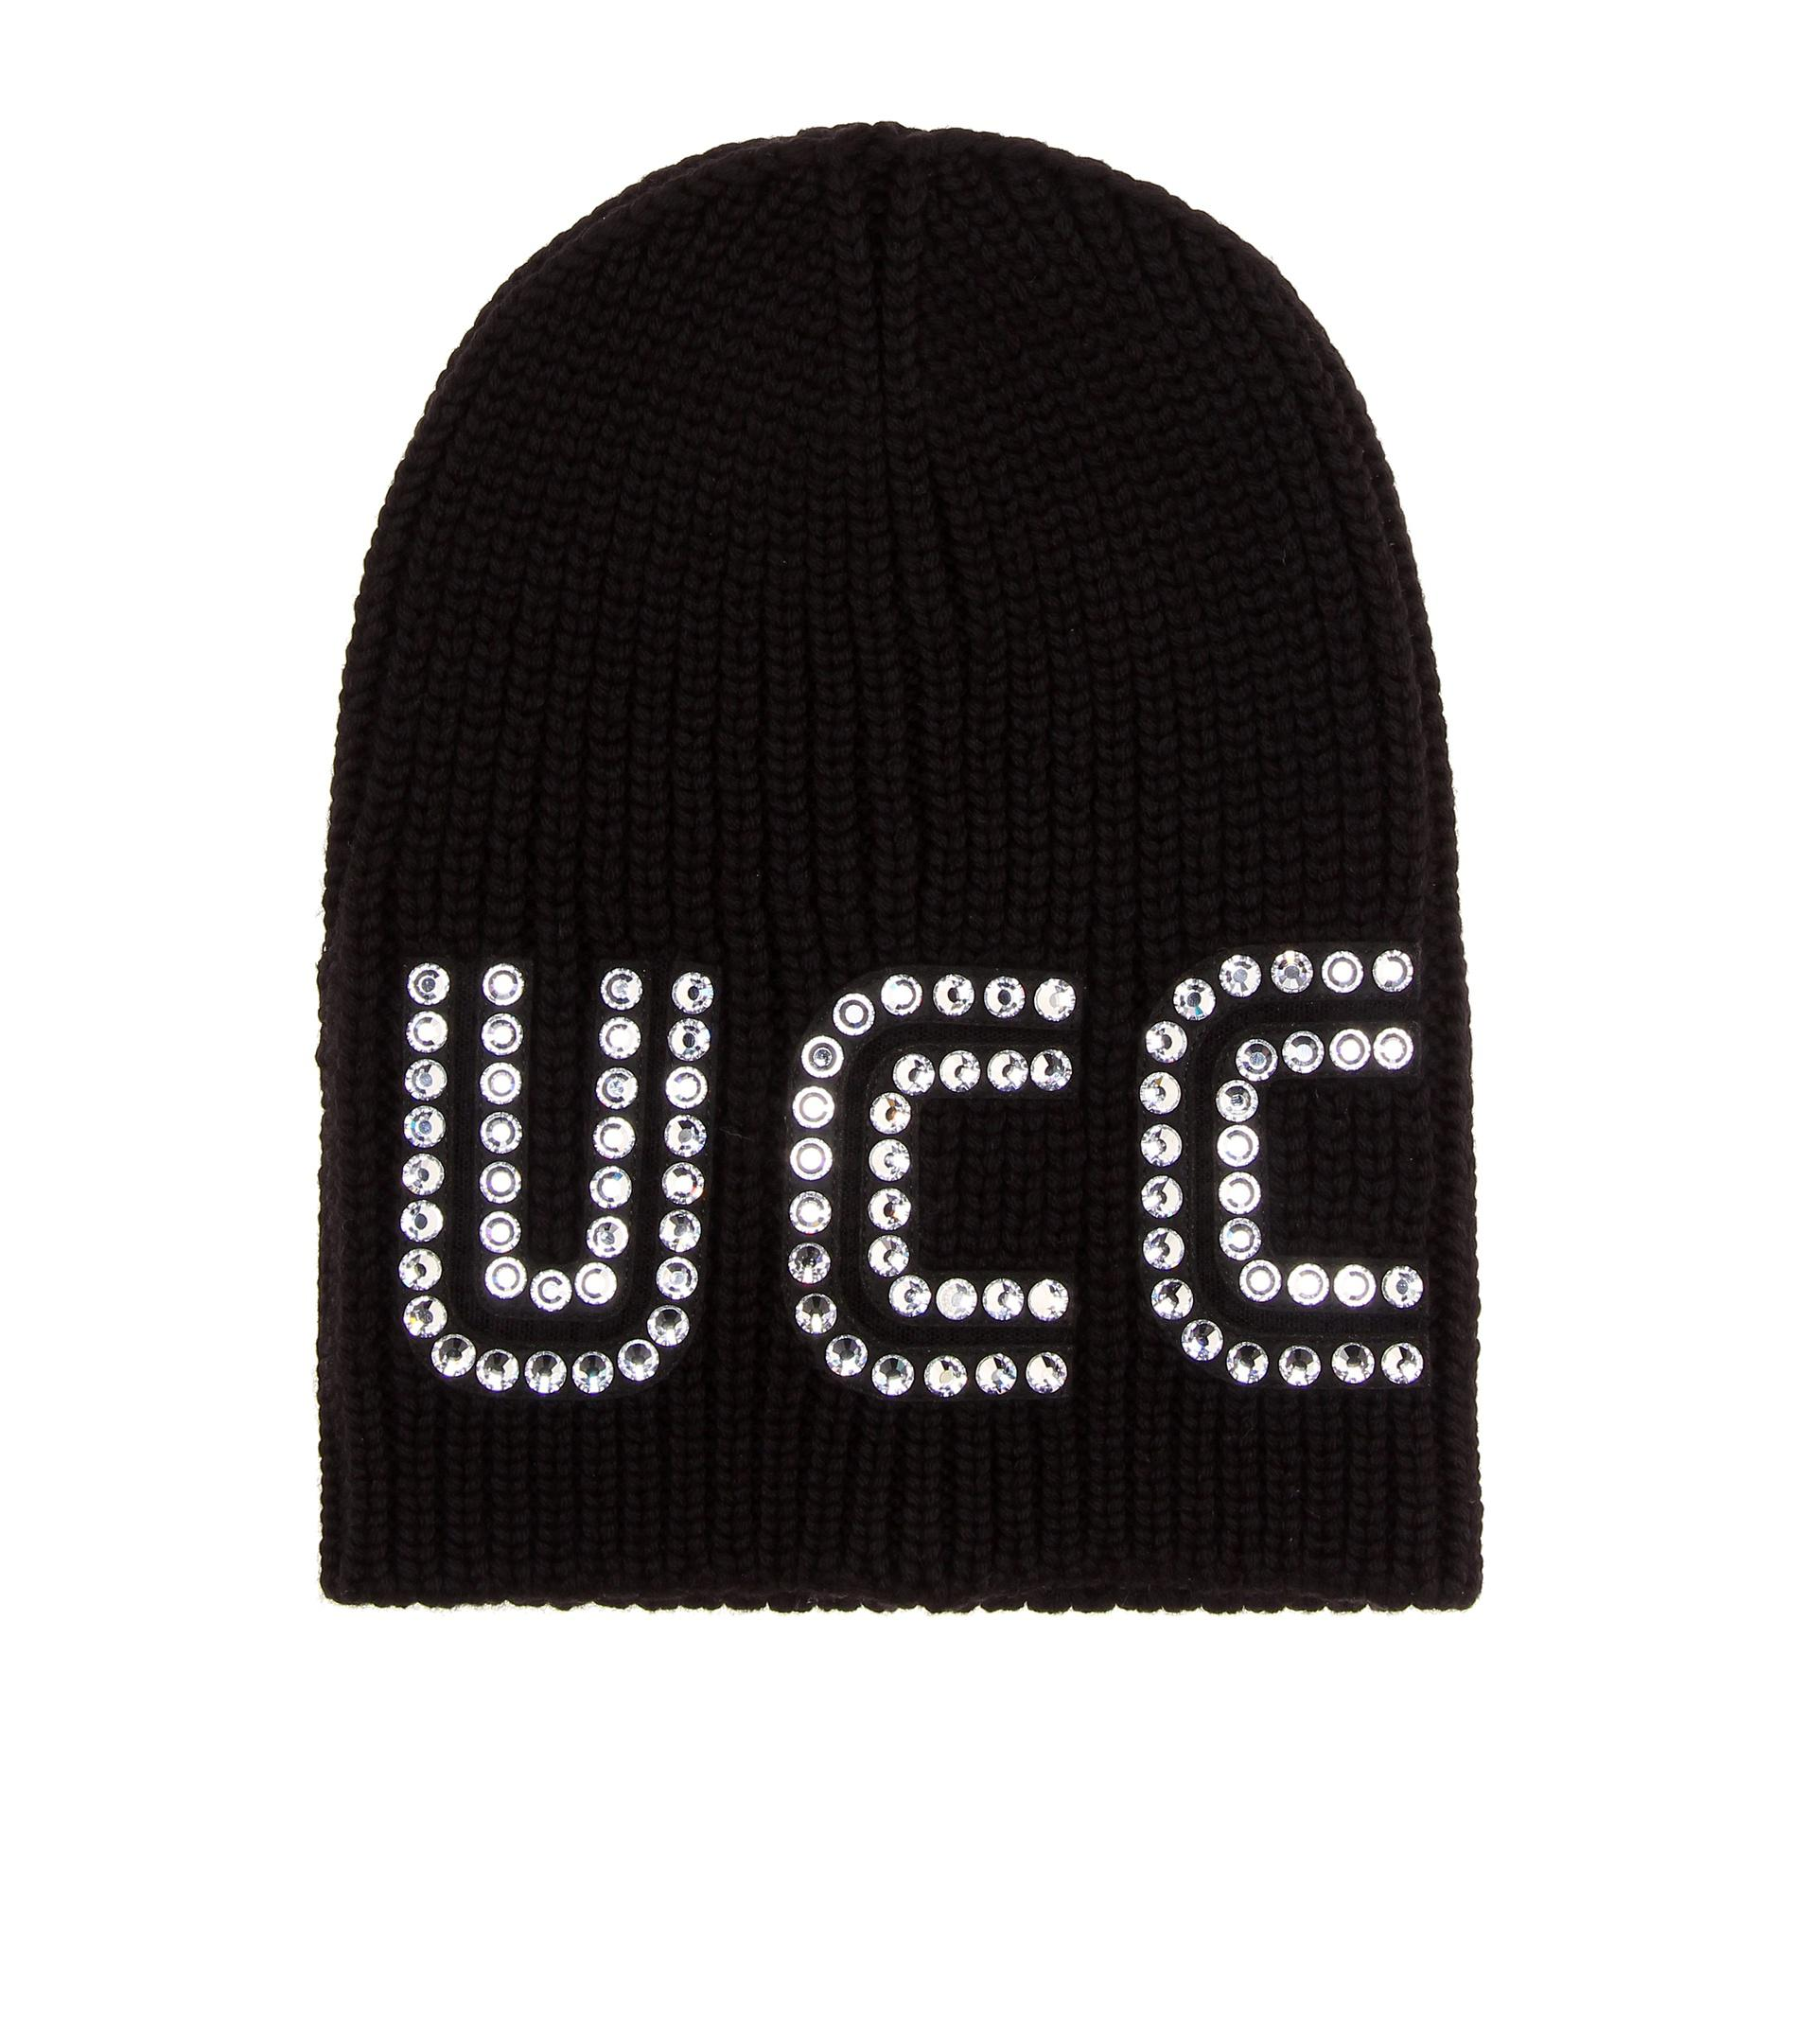 Gucci Guccy Game Sparkle Beanie in Black - Save 10% - Lyst 3214c0fe4f4c